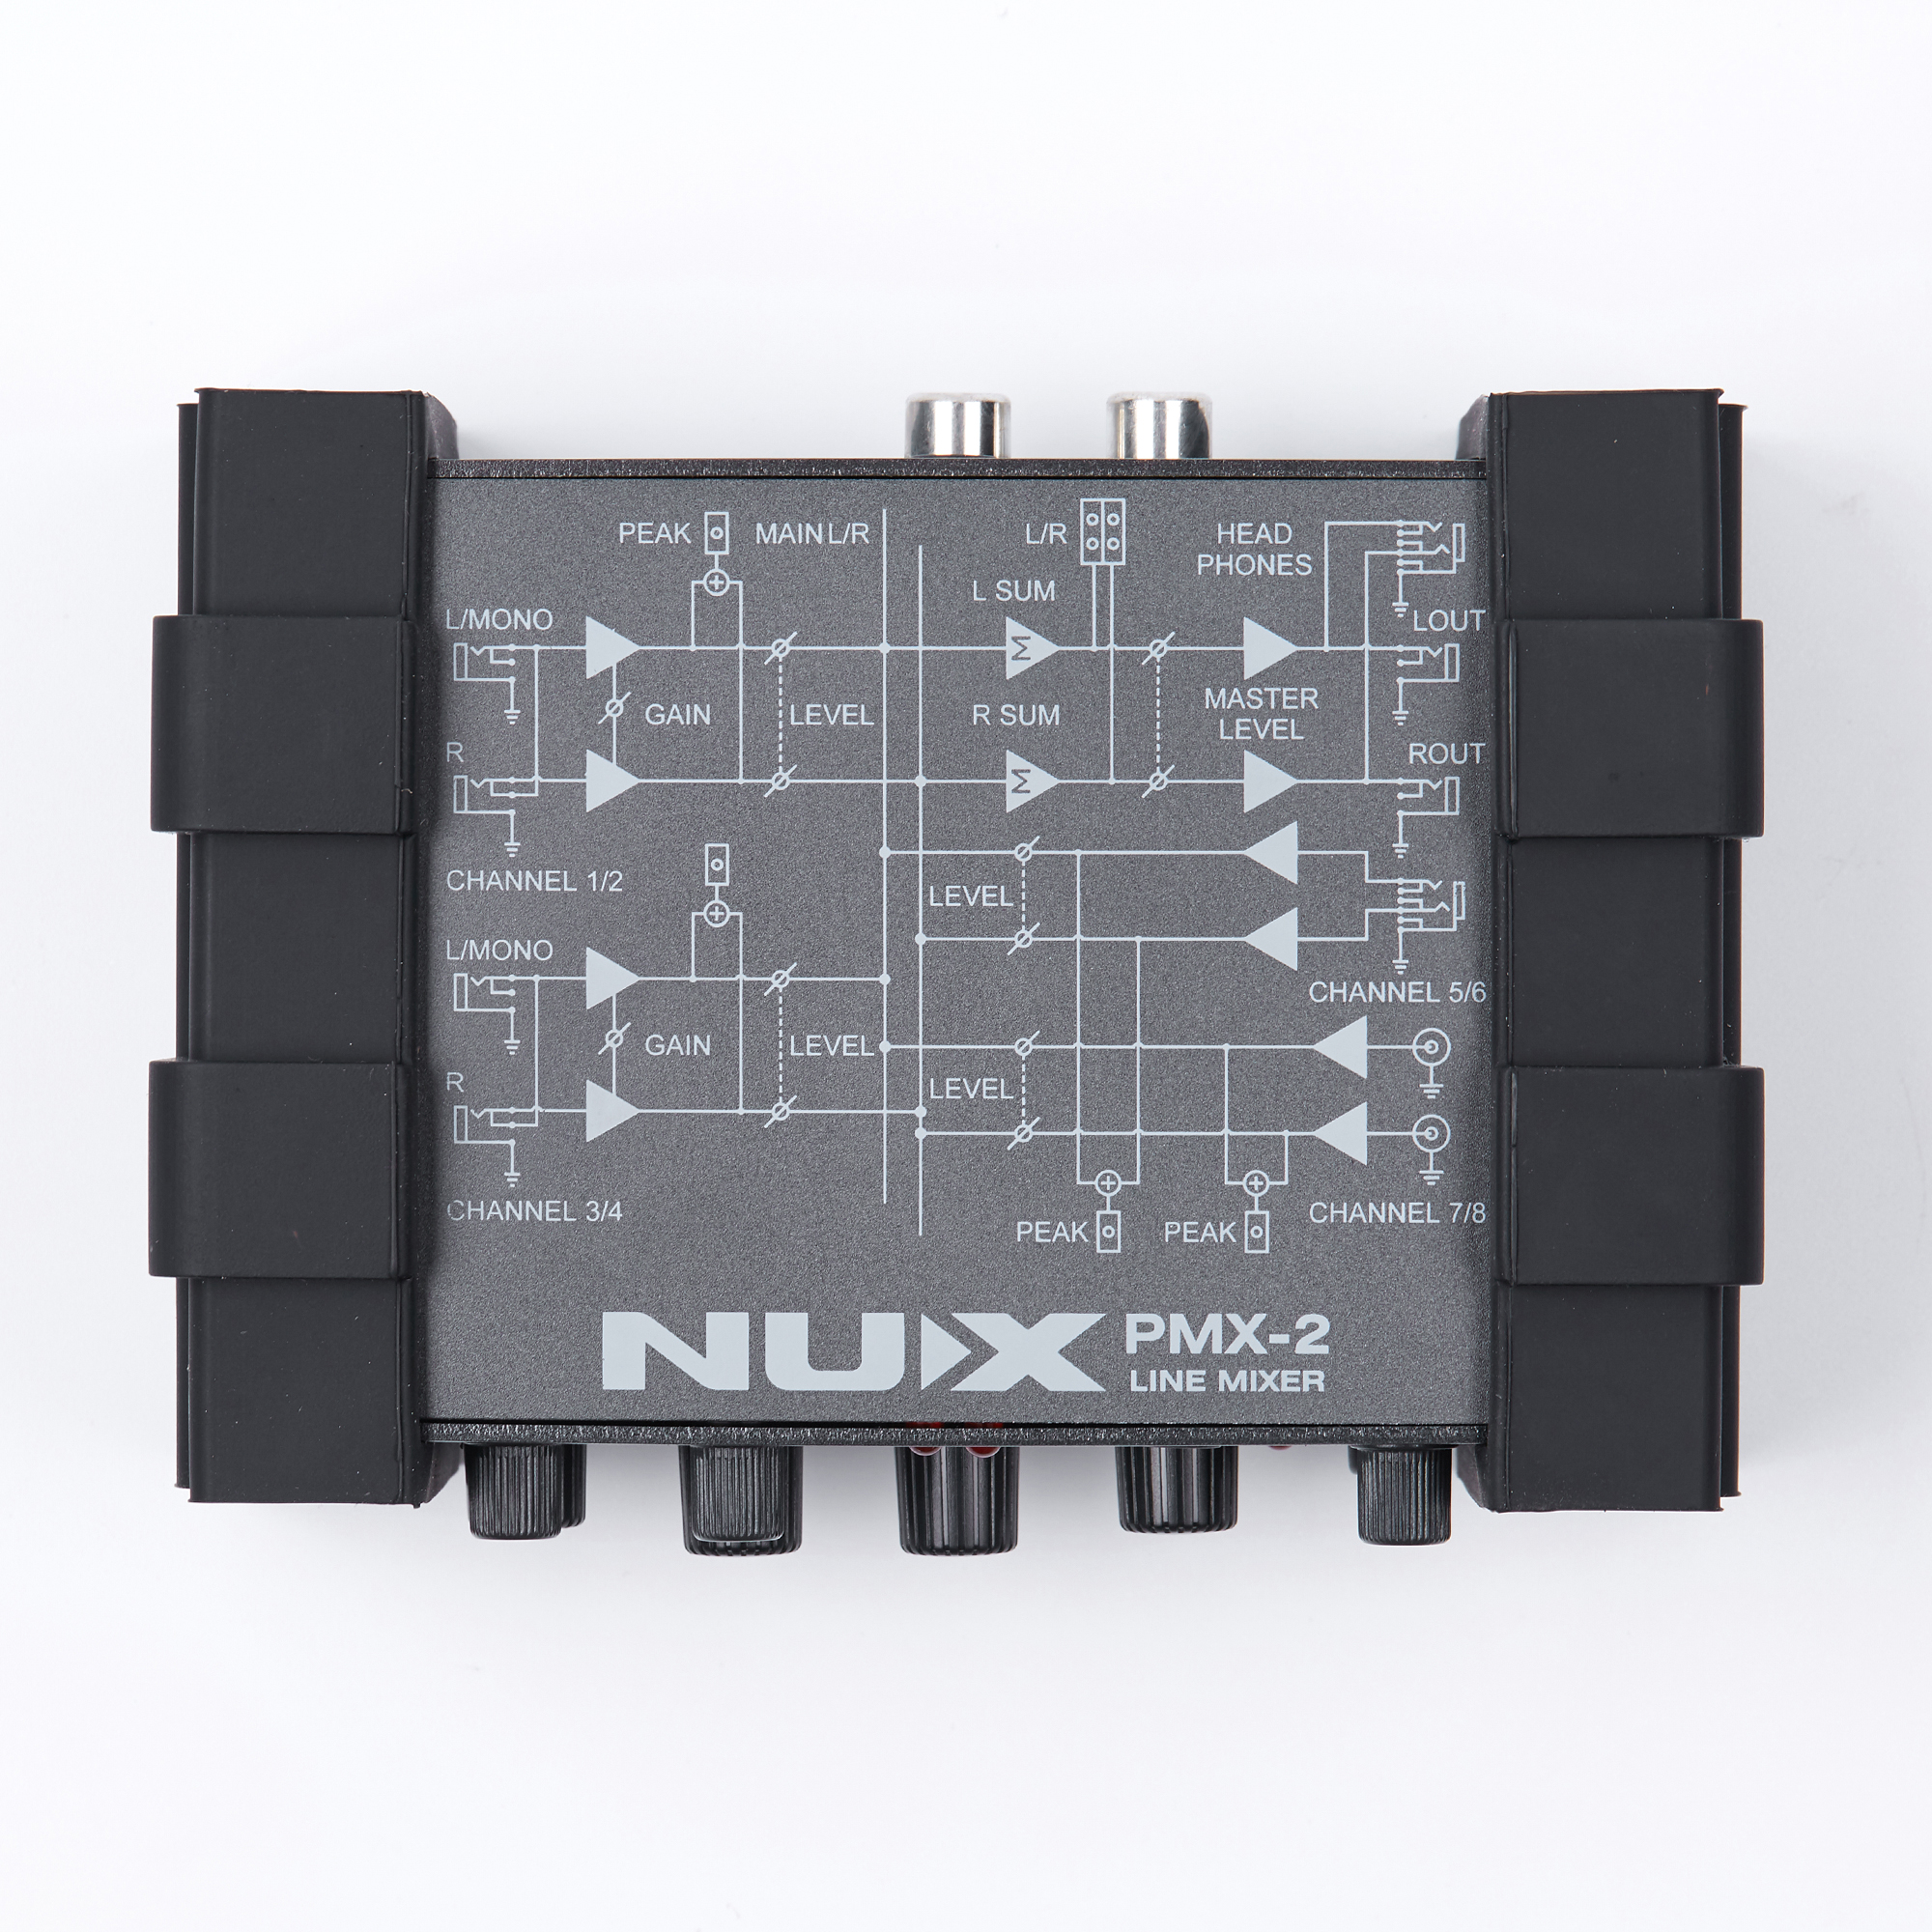 Gain Control 8 Inputs and 2 Outputs NUX PMX-2 Multi-Channel Mini Mixer 30 Musical Instruments Accessories for Guitar Bass Player салатник птичье молоко